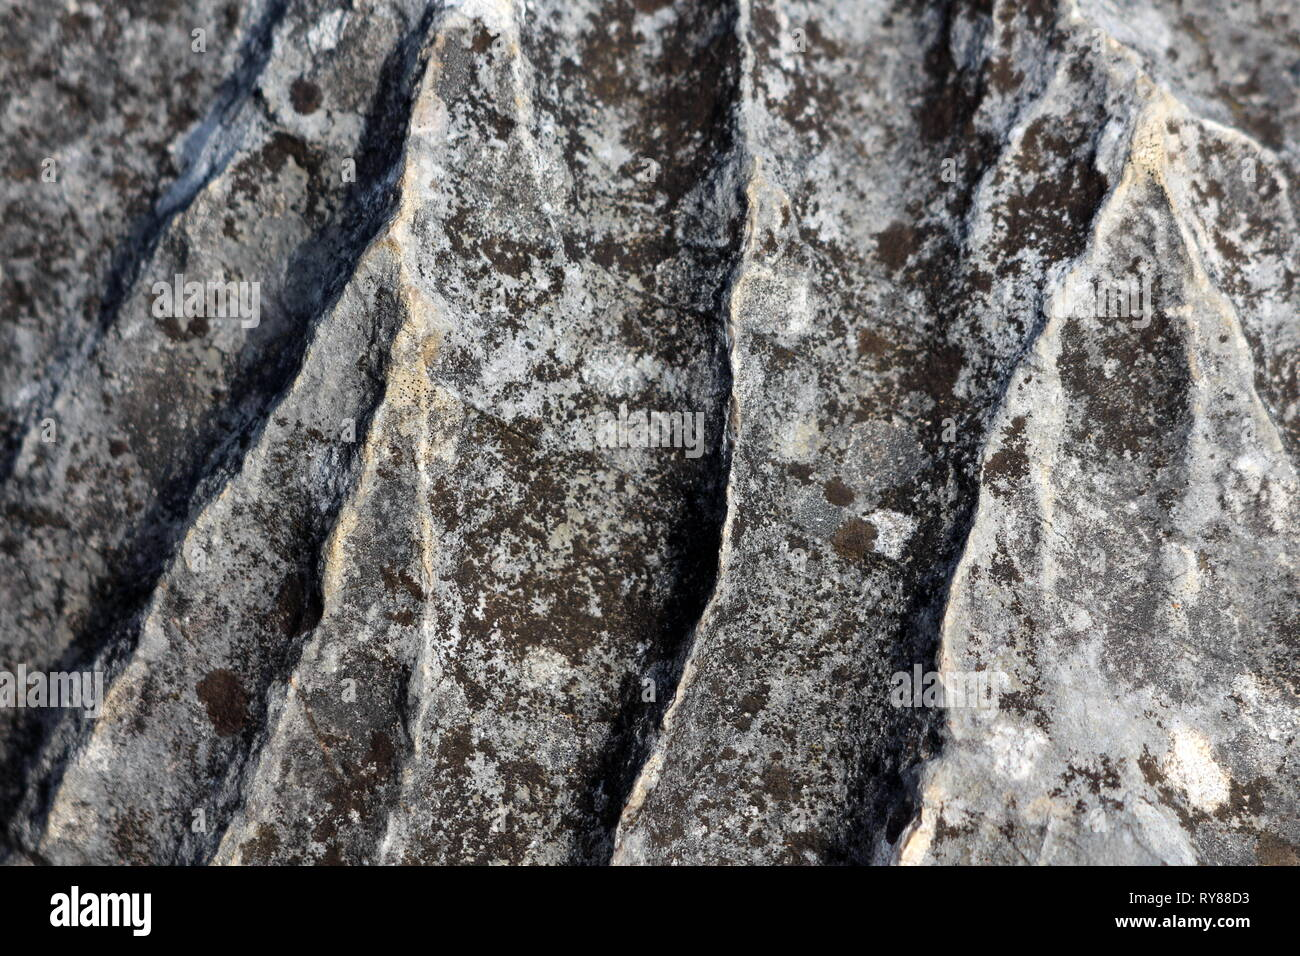 Texture wallpaper of old aged dark grey massive rock with moss patches on warm sunny spring day - Stock Image